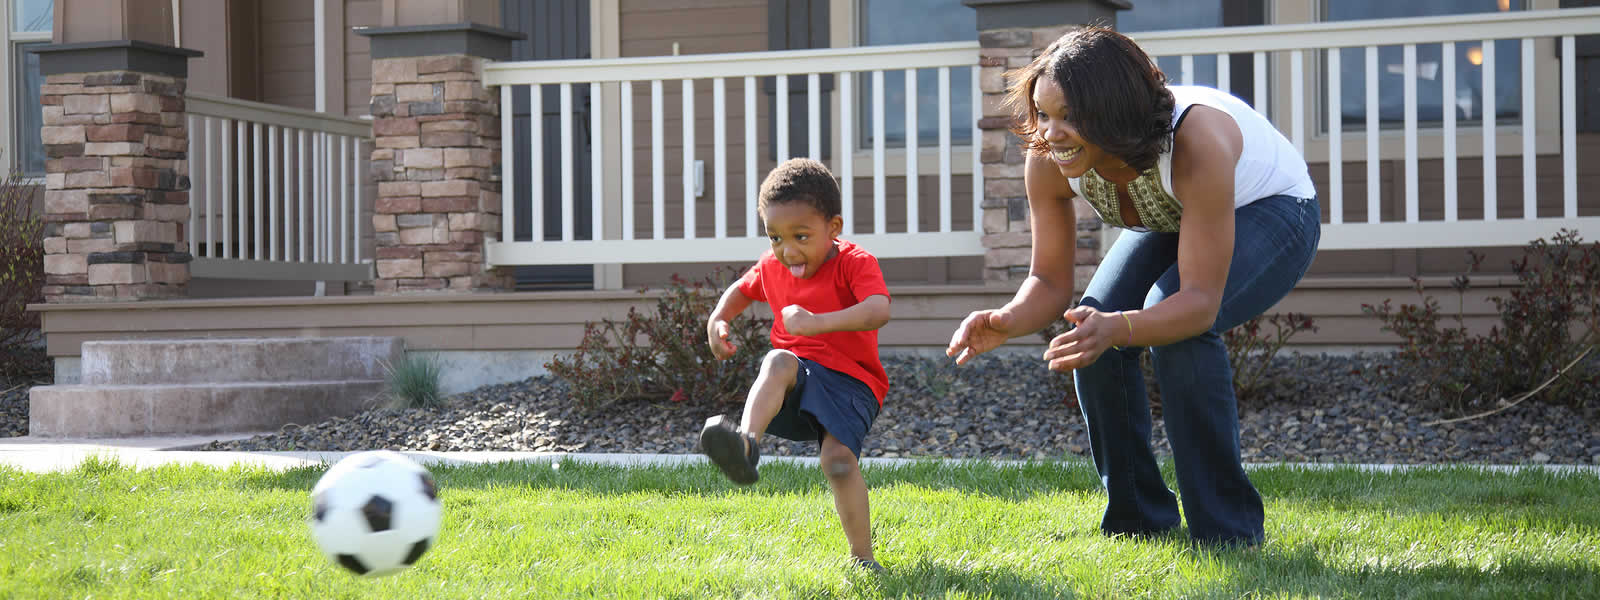 Child and mother playing soccer in front of their new home.